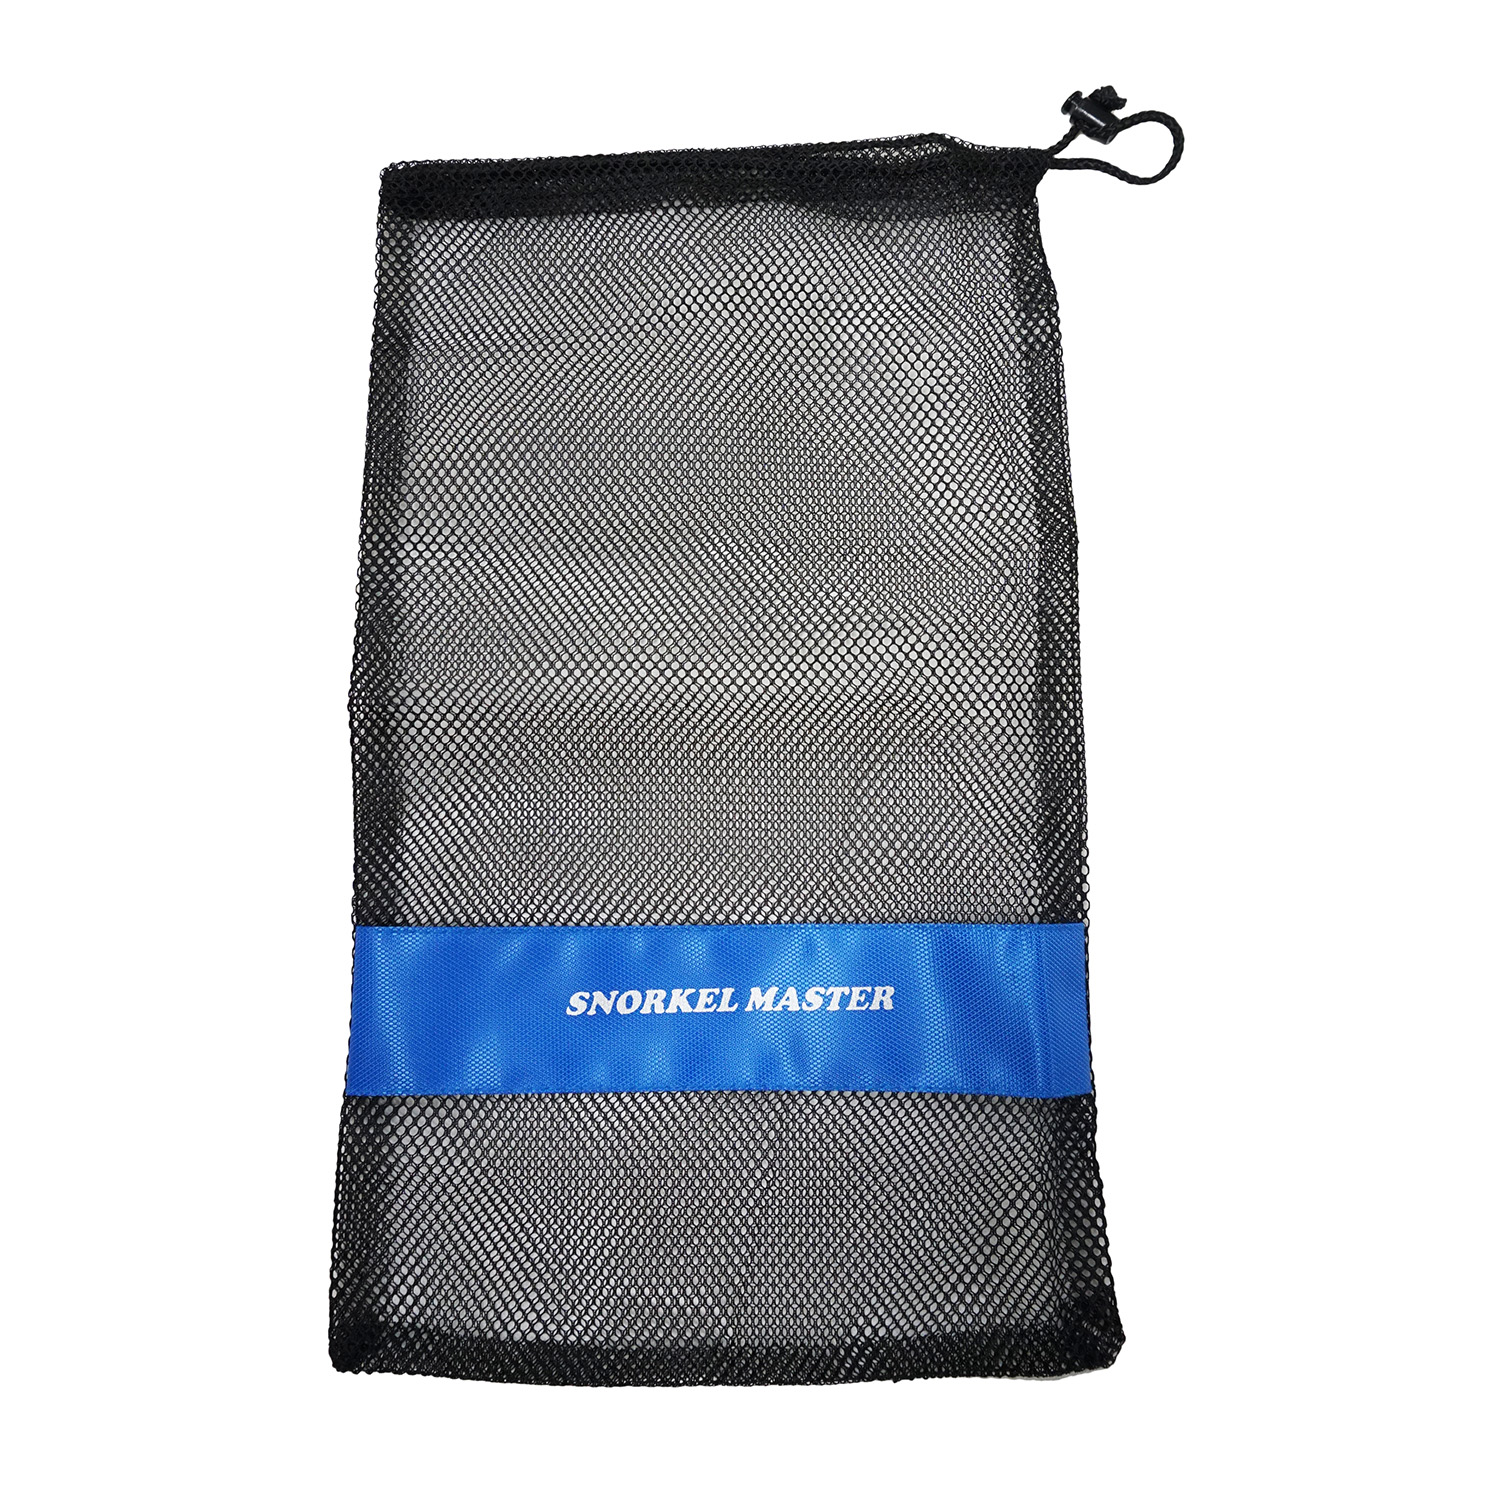 "Click here to buy Snorkel Master Snorkeling Drawstring Mesh Bag w  Blue Bar- 19"" x 10"" by Scuba Choice."